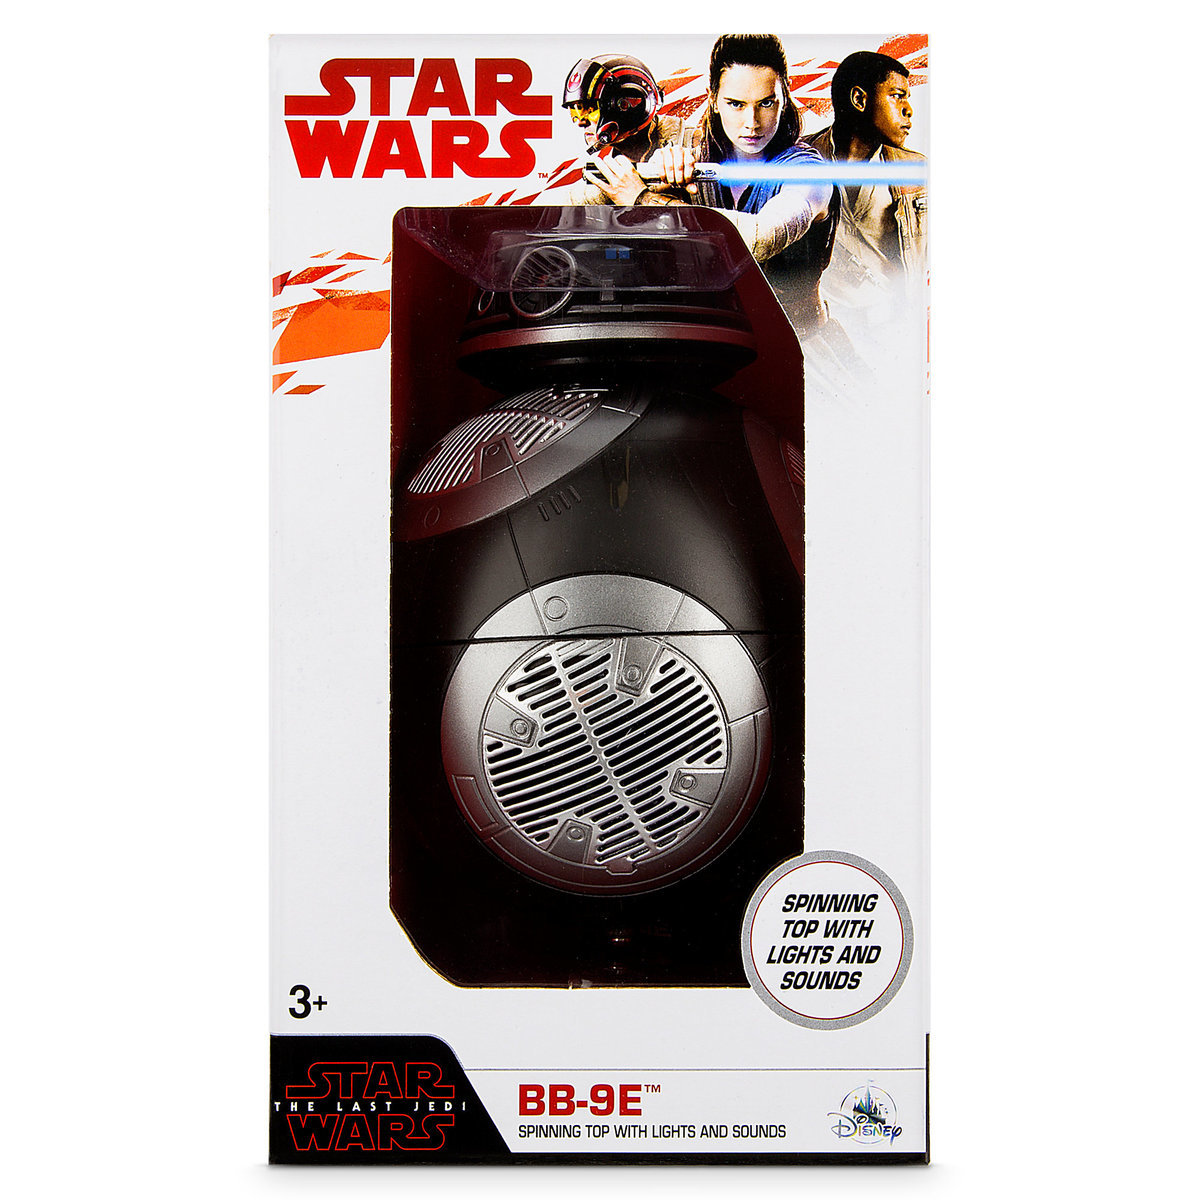 TLJ BB-9E Spinning Top Toy 1